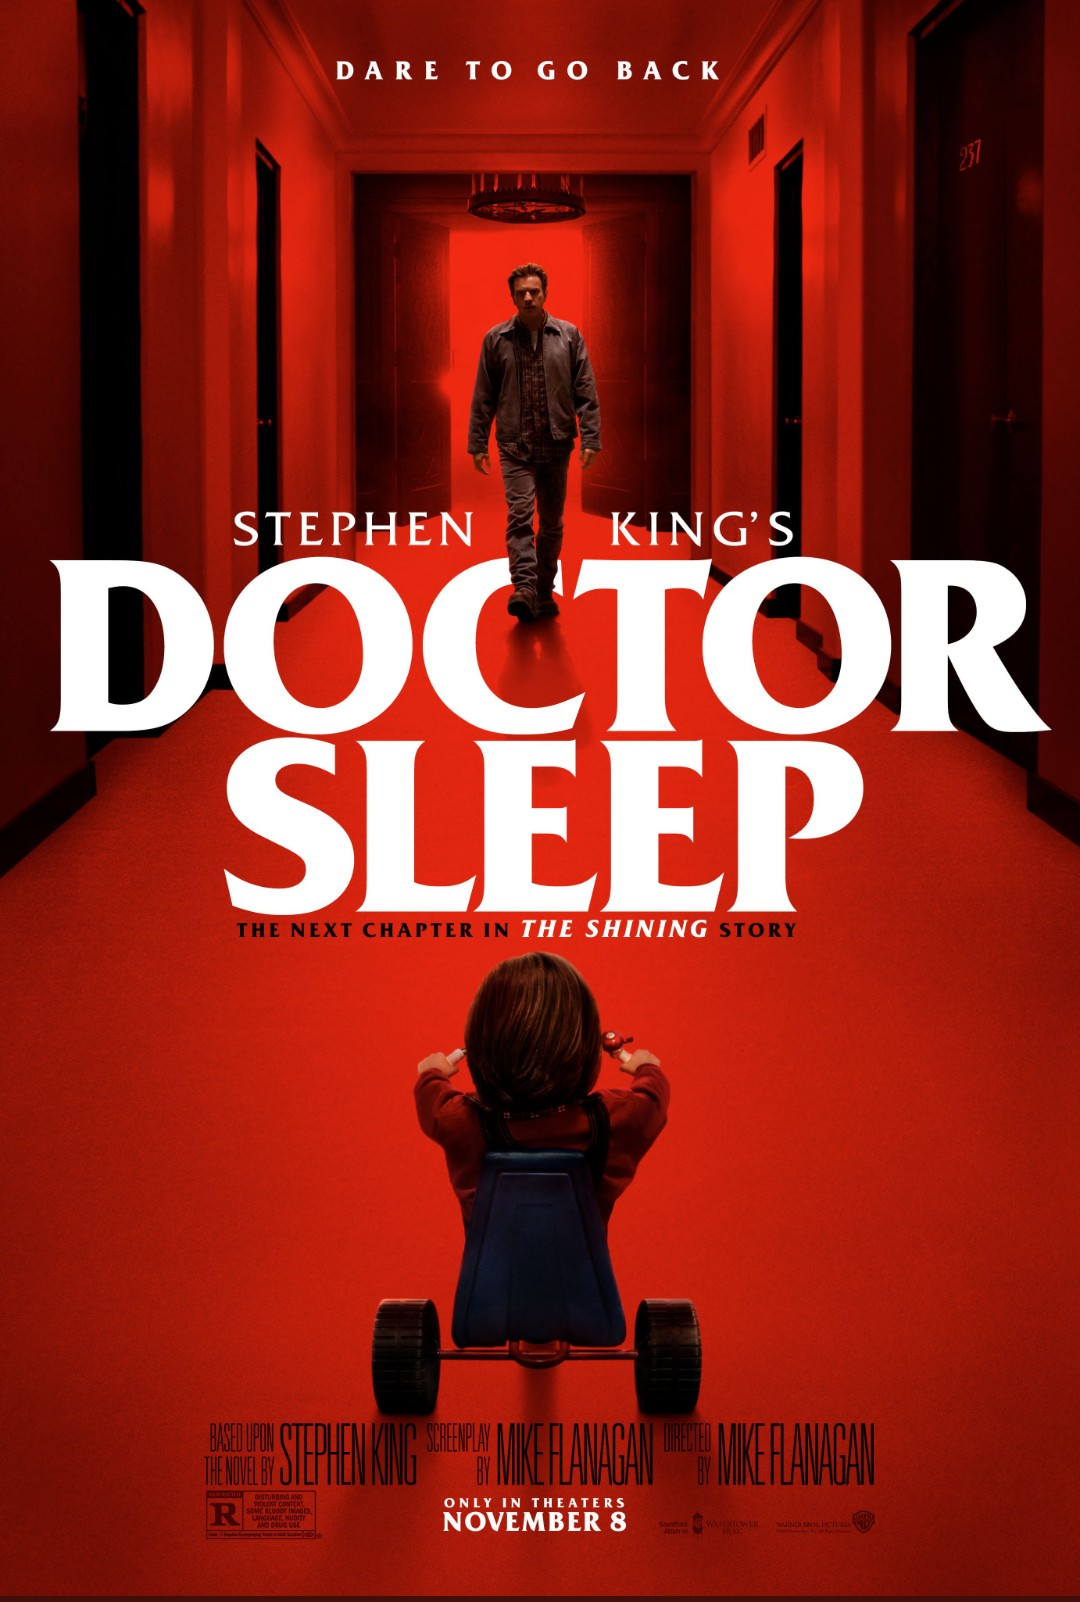 Doctor Sleep Ewan McGregor, Rebecca Ferguson, Jacob Tremblay, Zahn McClarnon, Bruce Greenwood, Carel Struycken, Emiky Alyn Lind